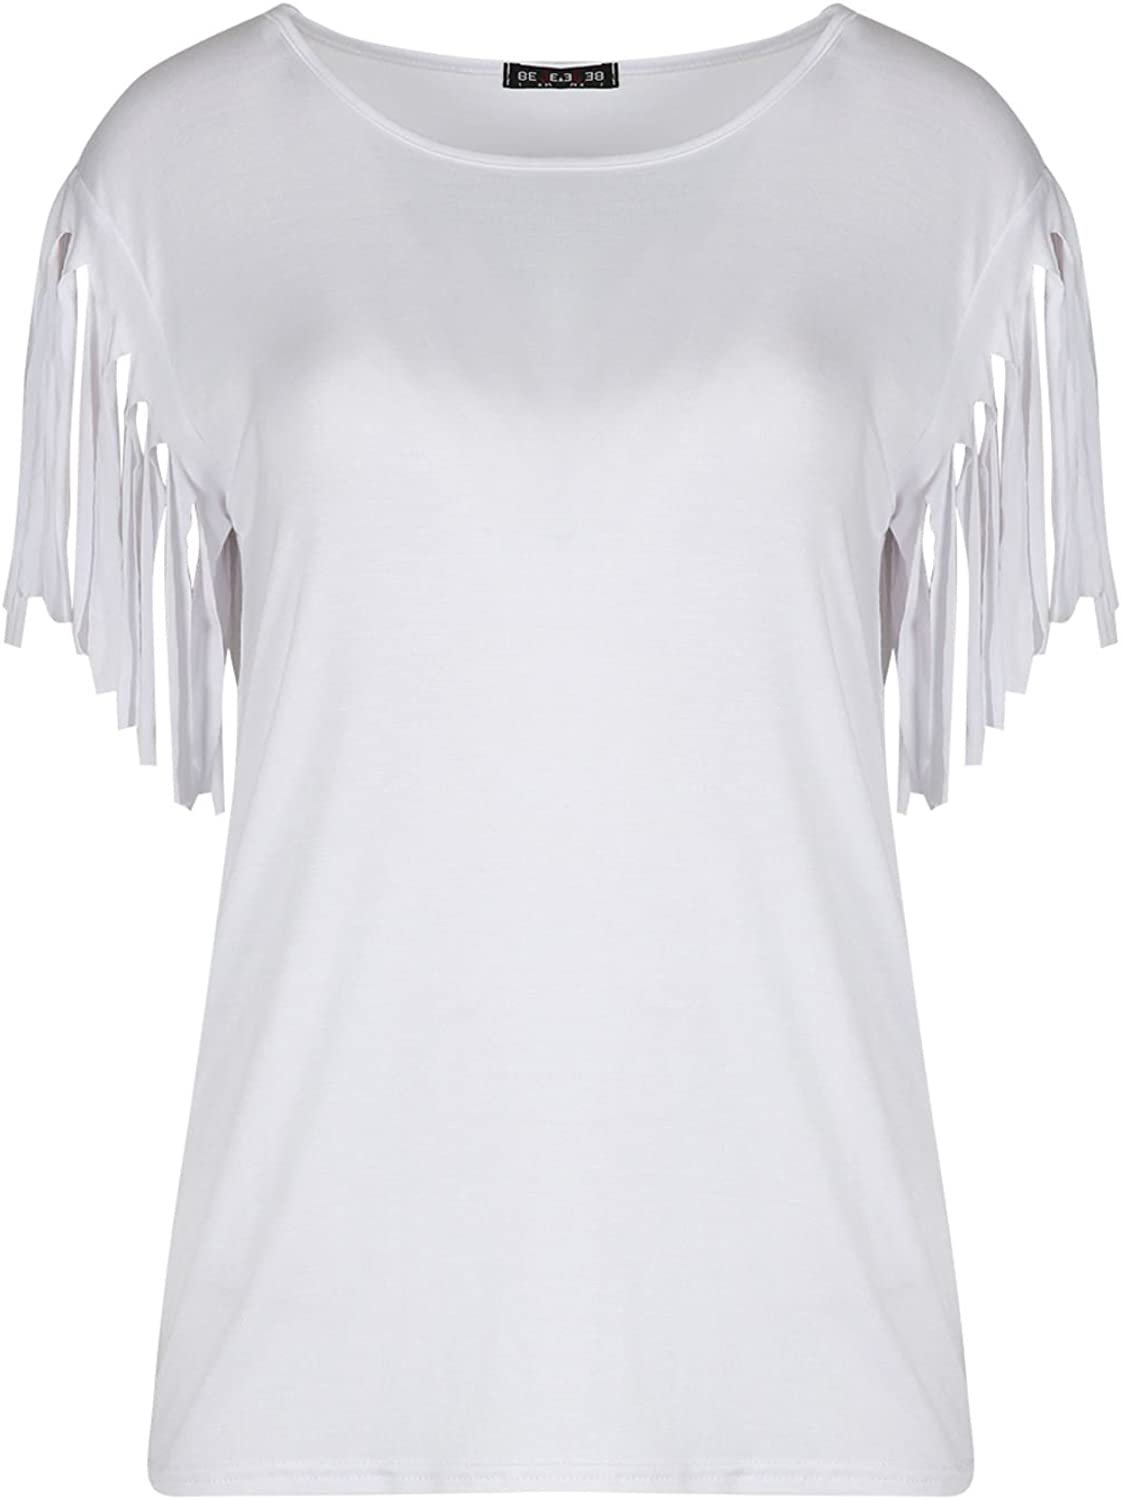 Oops Outlet UK Womens Fashion Ladies Fringe Summer Loose Top Short Sleeve Blouse Casual Top T Shirt